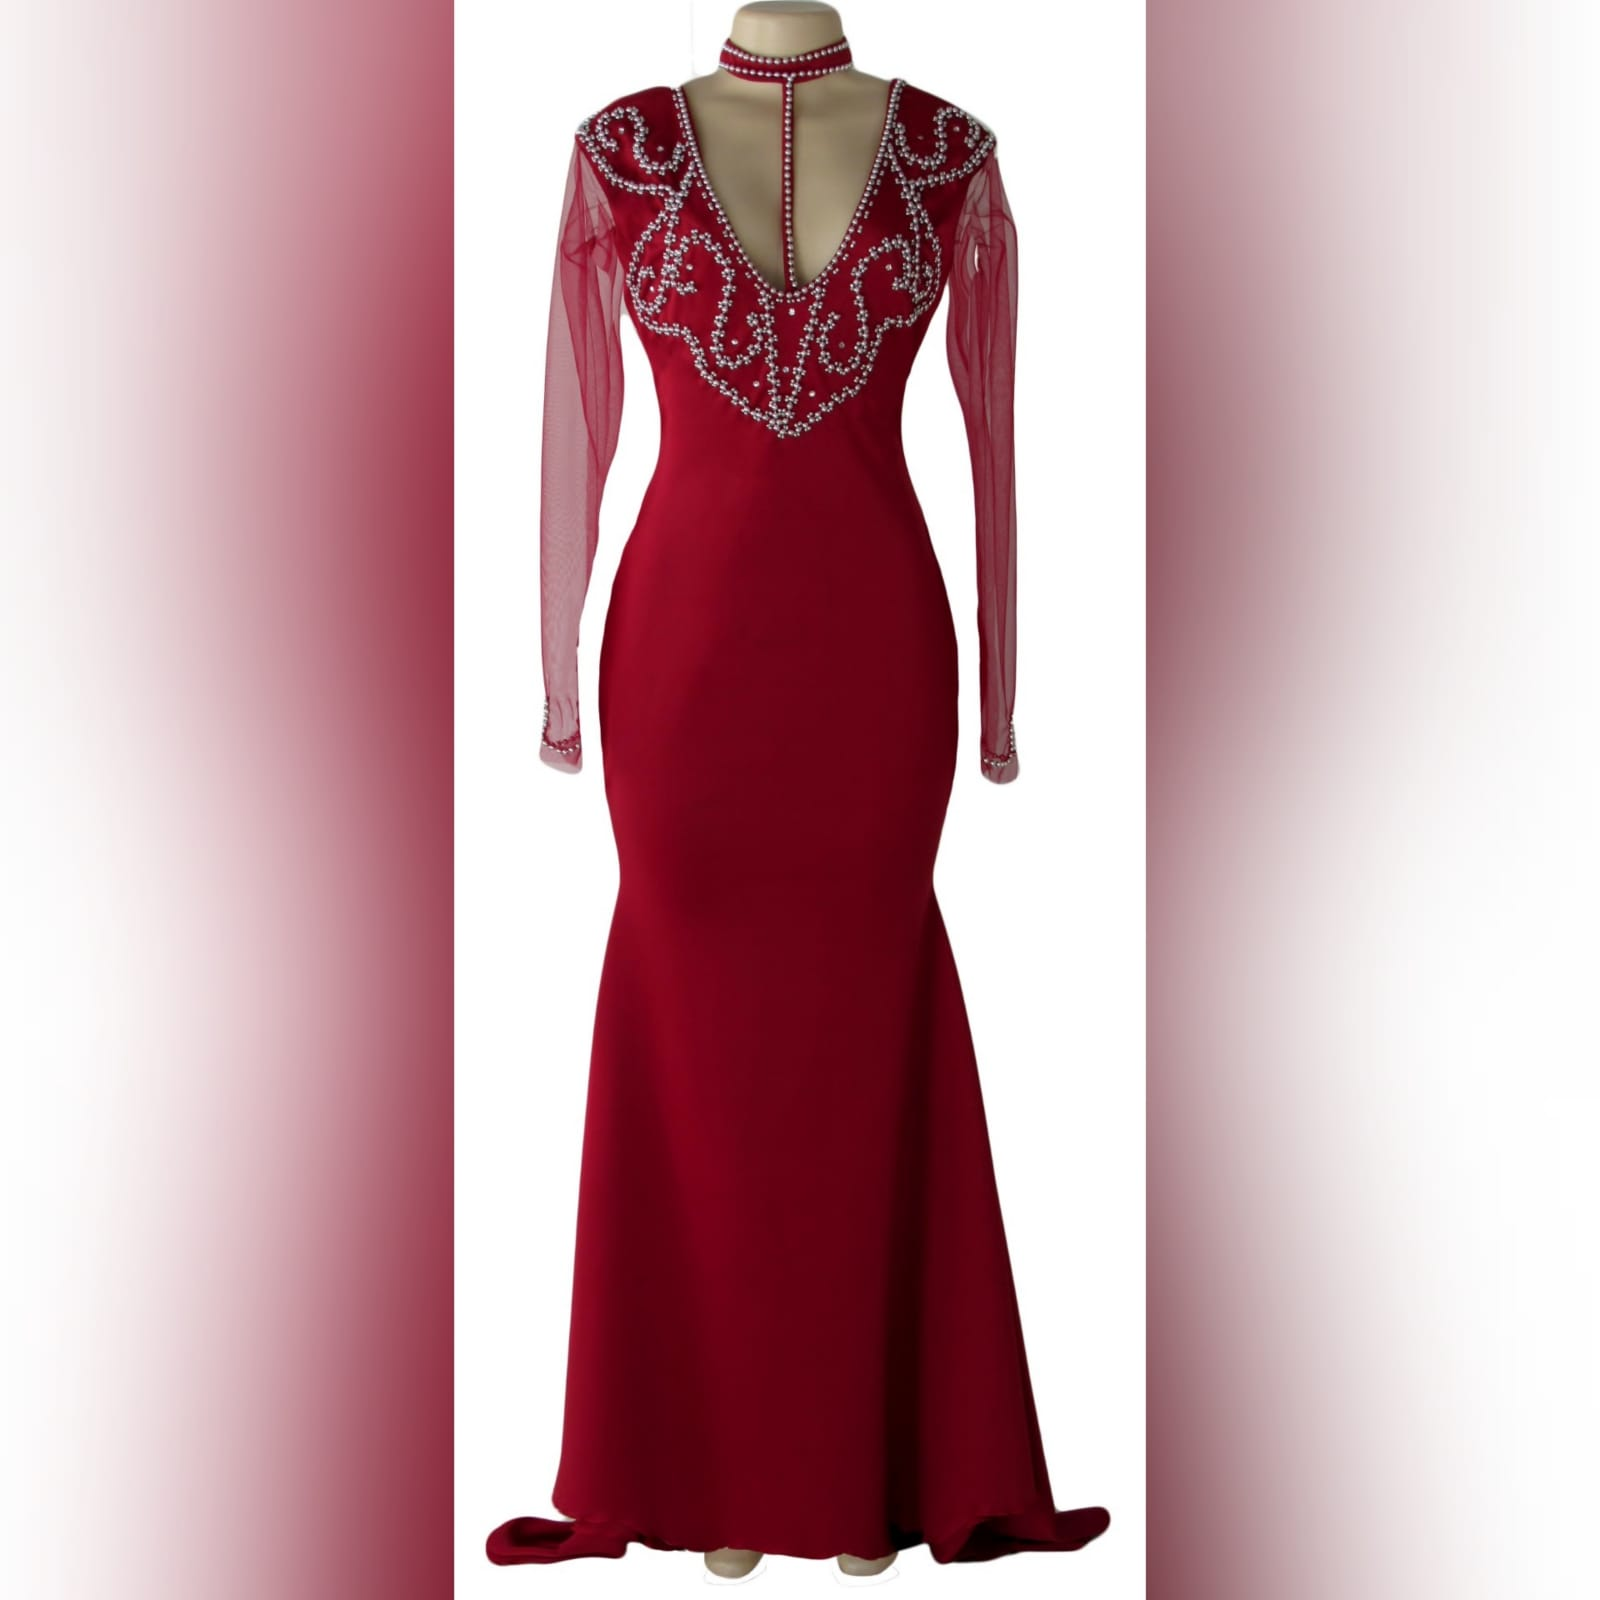 Beaded red long evening party dress 4 red long evening party dress, fitted till hip then it flares out a bit, with a train, with long sheer sleeves. Dress with a v neckline detailed in silver with an optional choker.